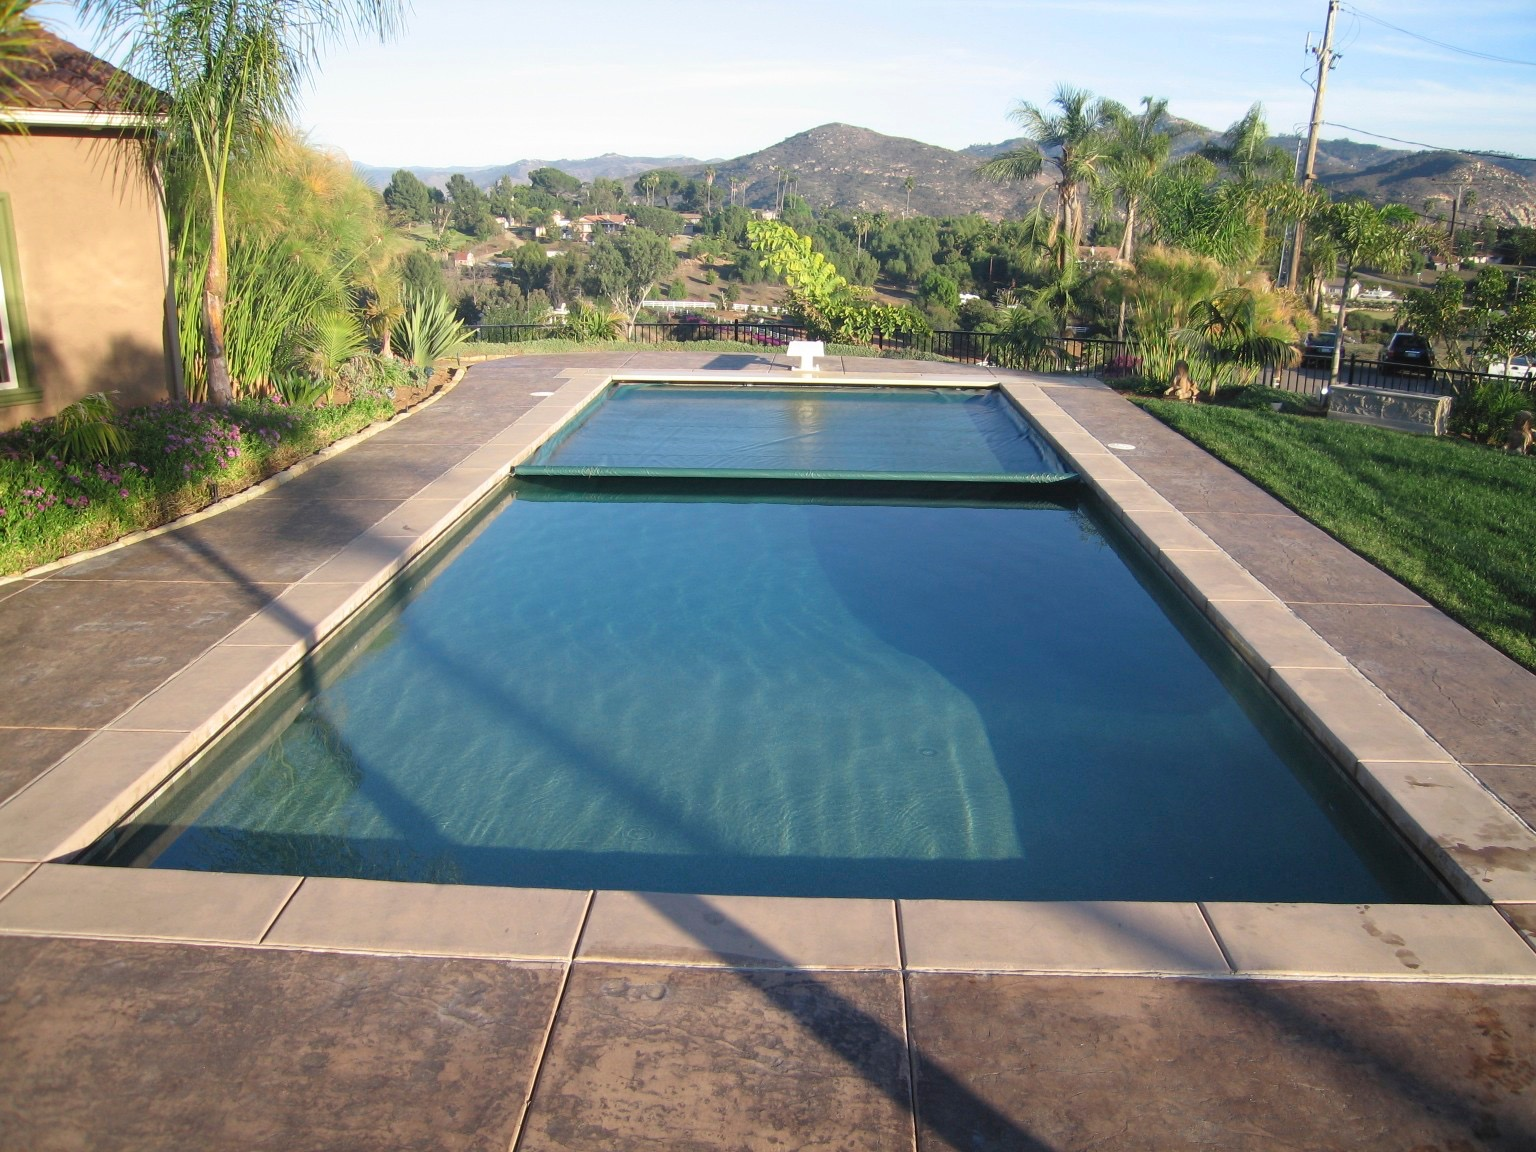 home pool covers pool fences about gallery faq staff reviews contact